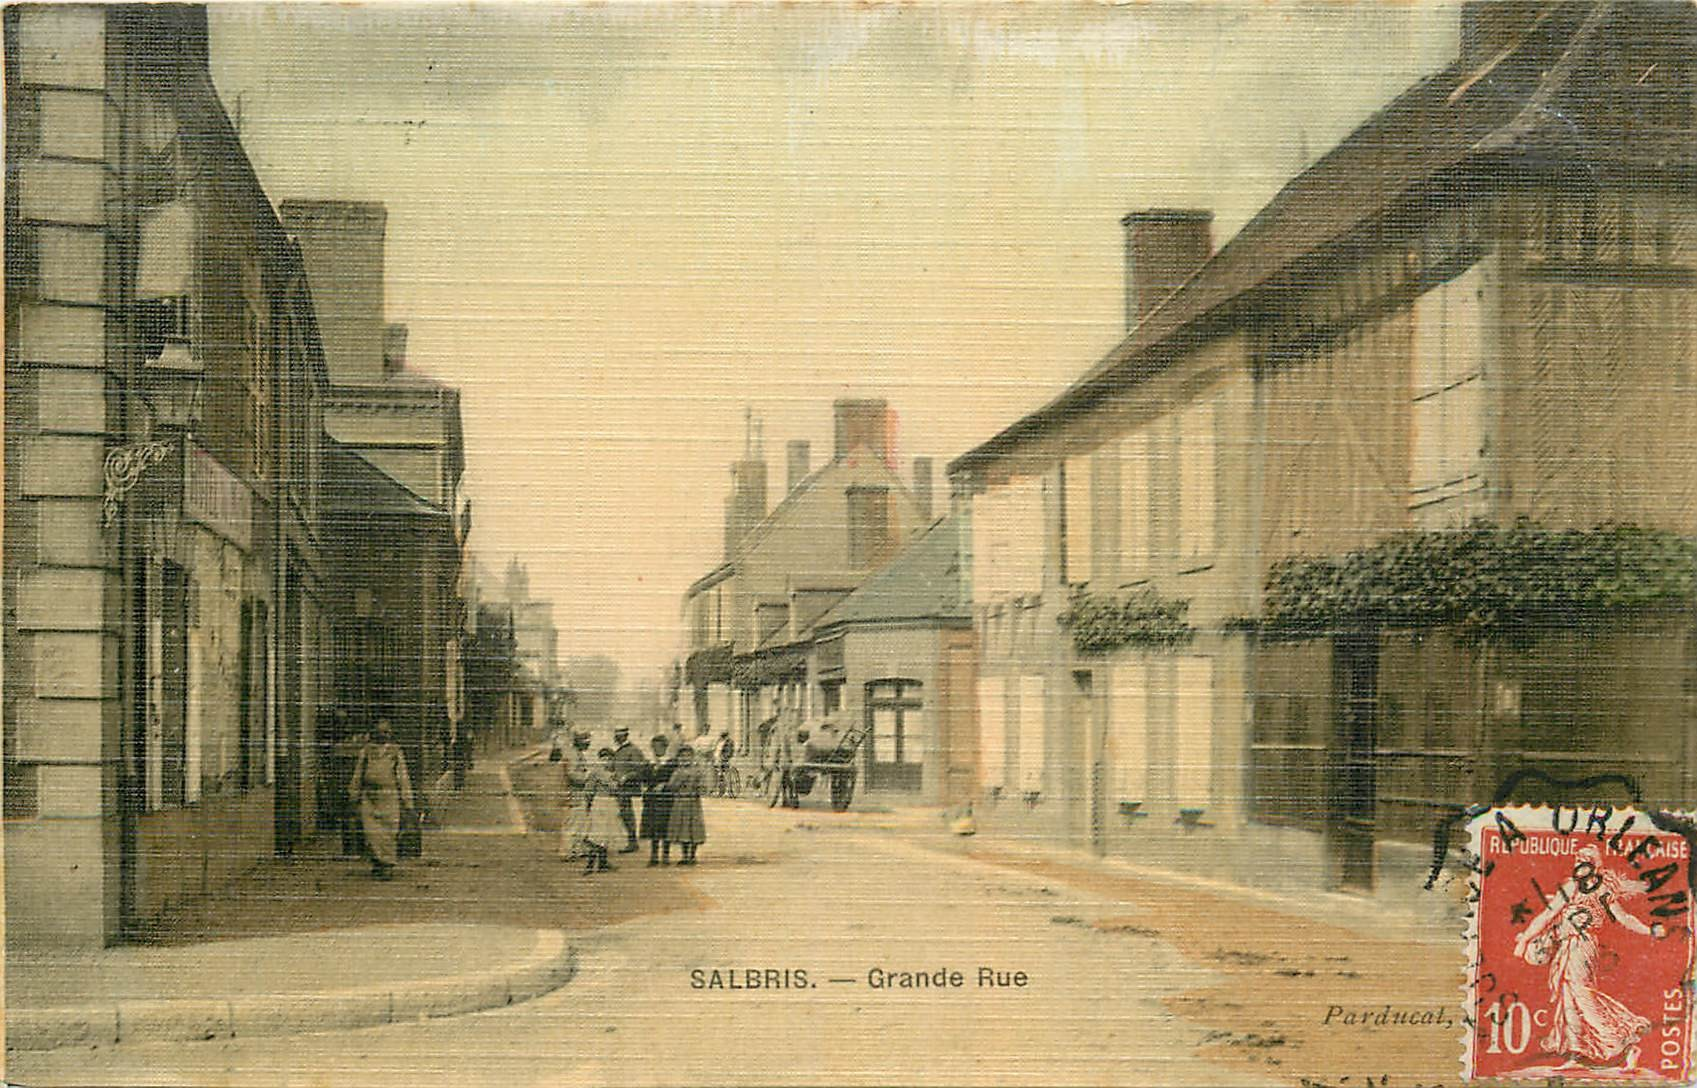 WW 41. SALBRIS. Grande Rue. Carte toilée 1916